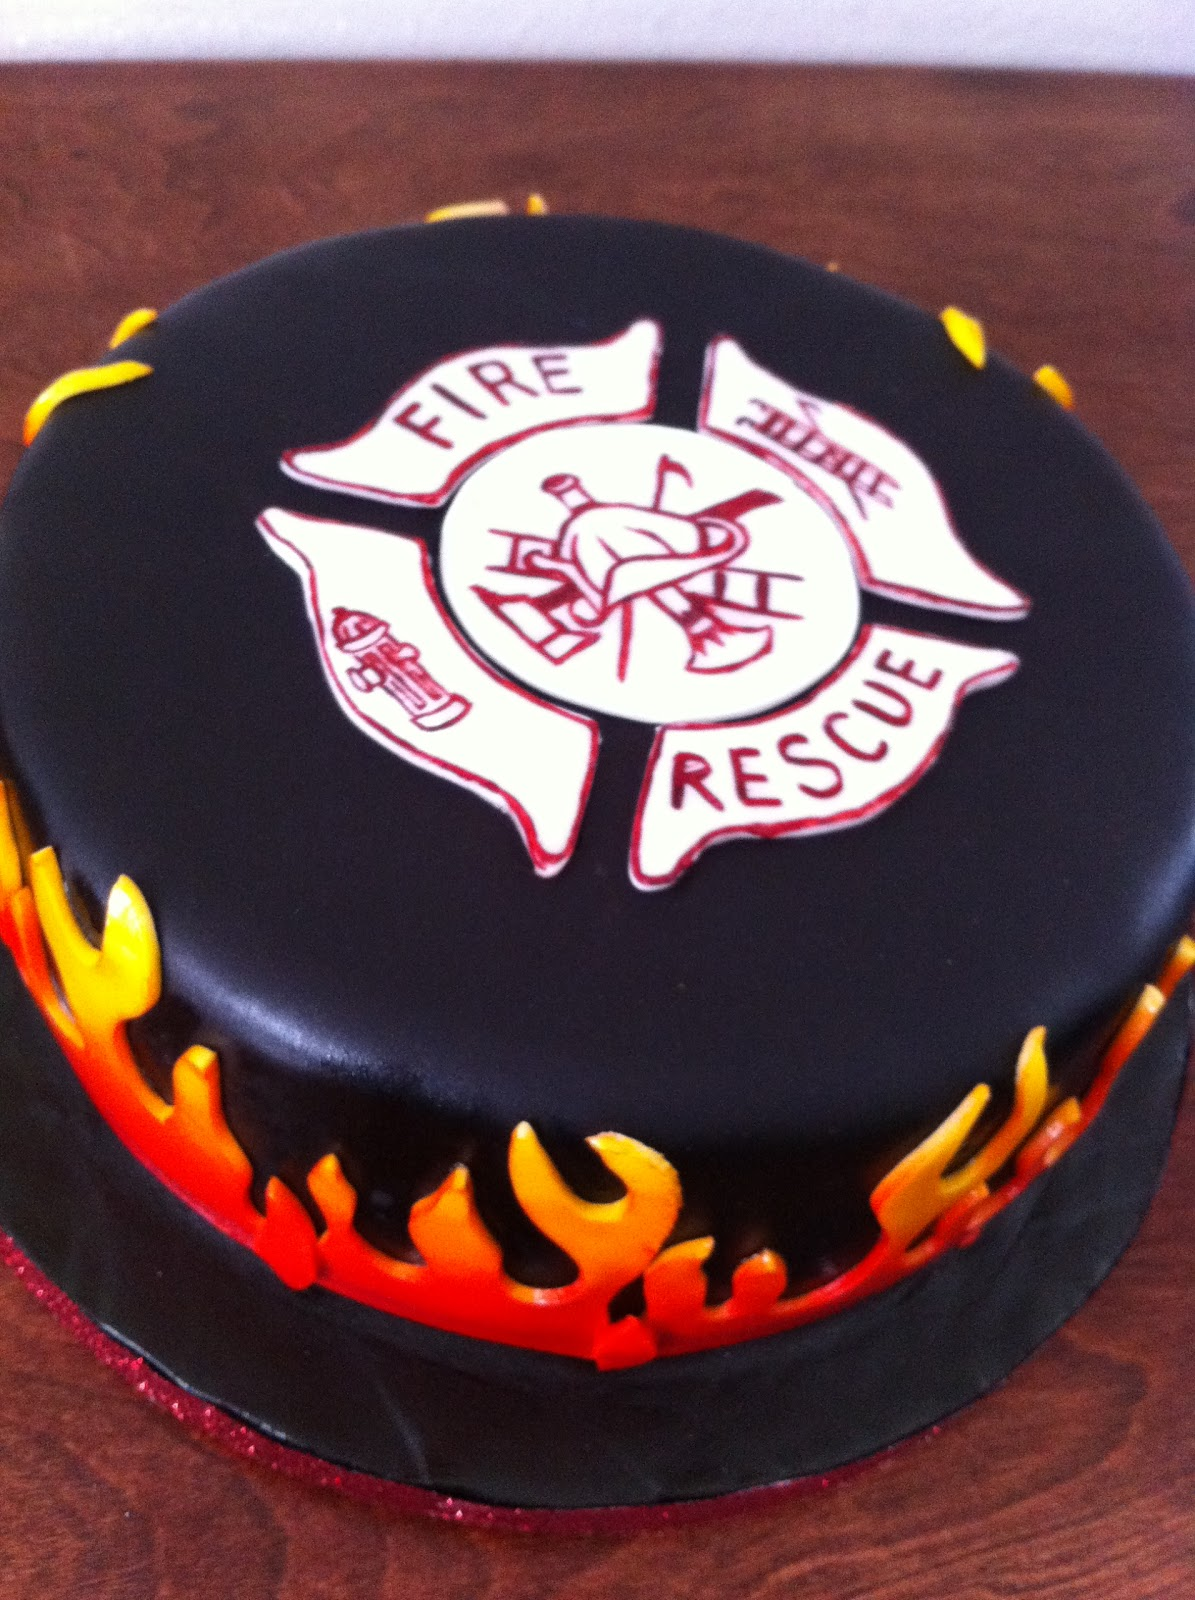 Donna Belle Desserts Firefighter Cake